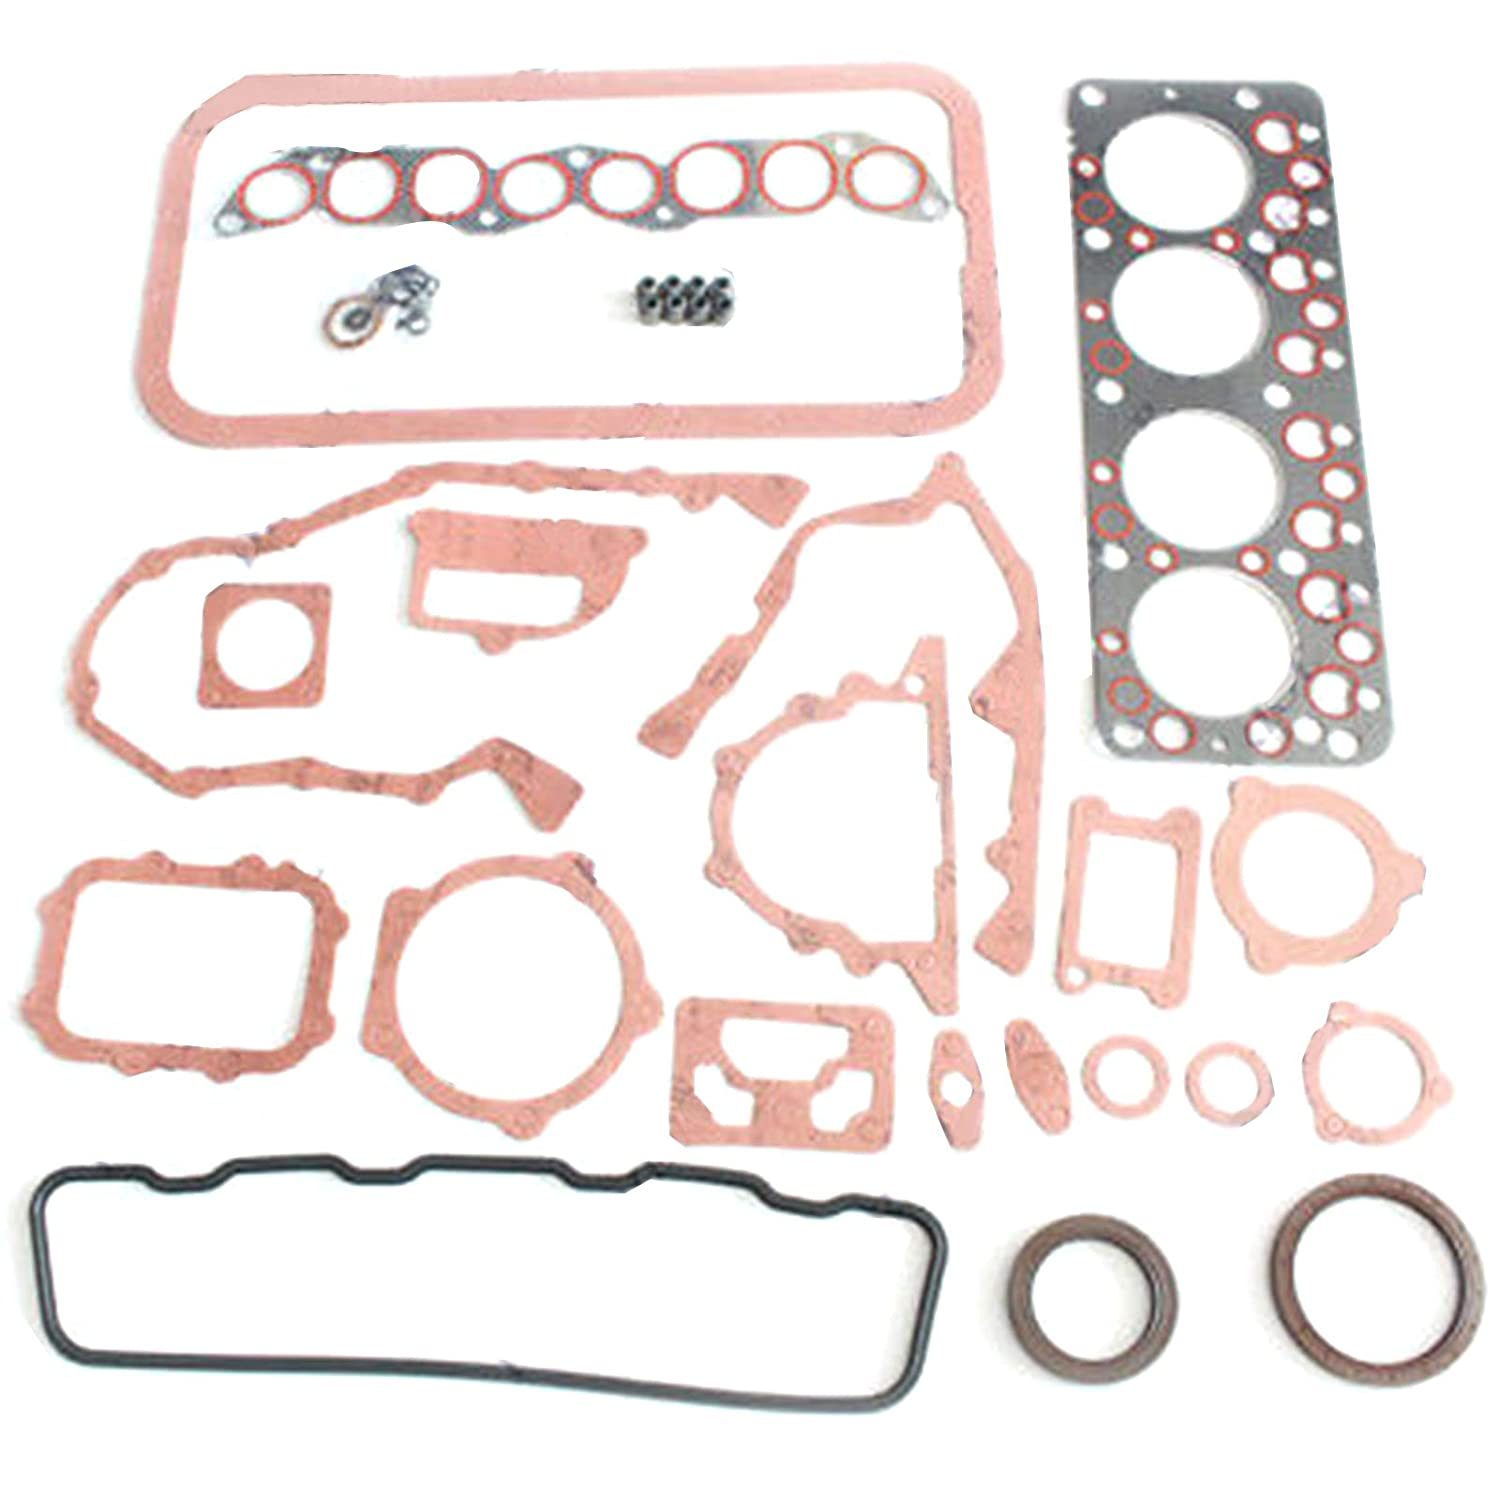 Spare Part SD22 SD-22 SD20 Engine Gasket Kit for Nissan Construction Machinery 10101-Y7525 Excavator Gasket Aftermarket Parts